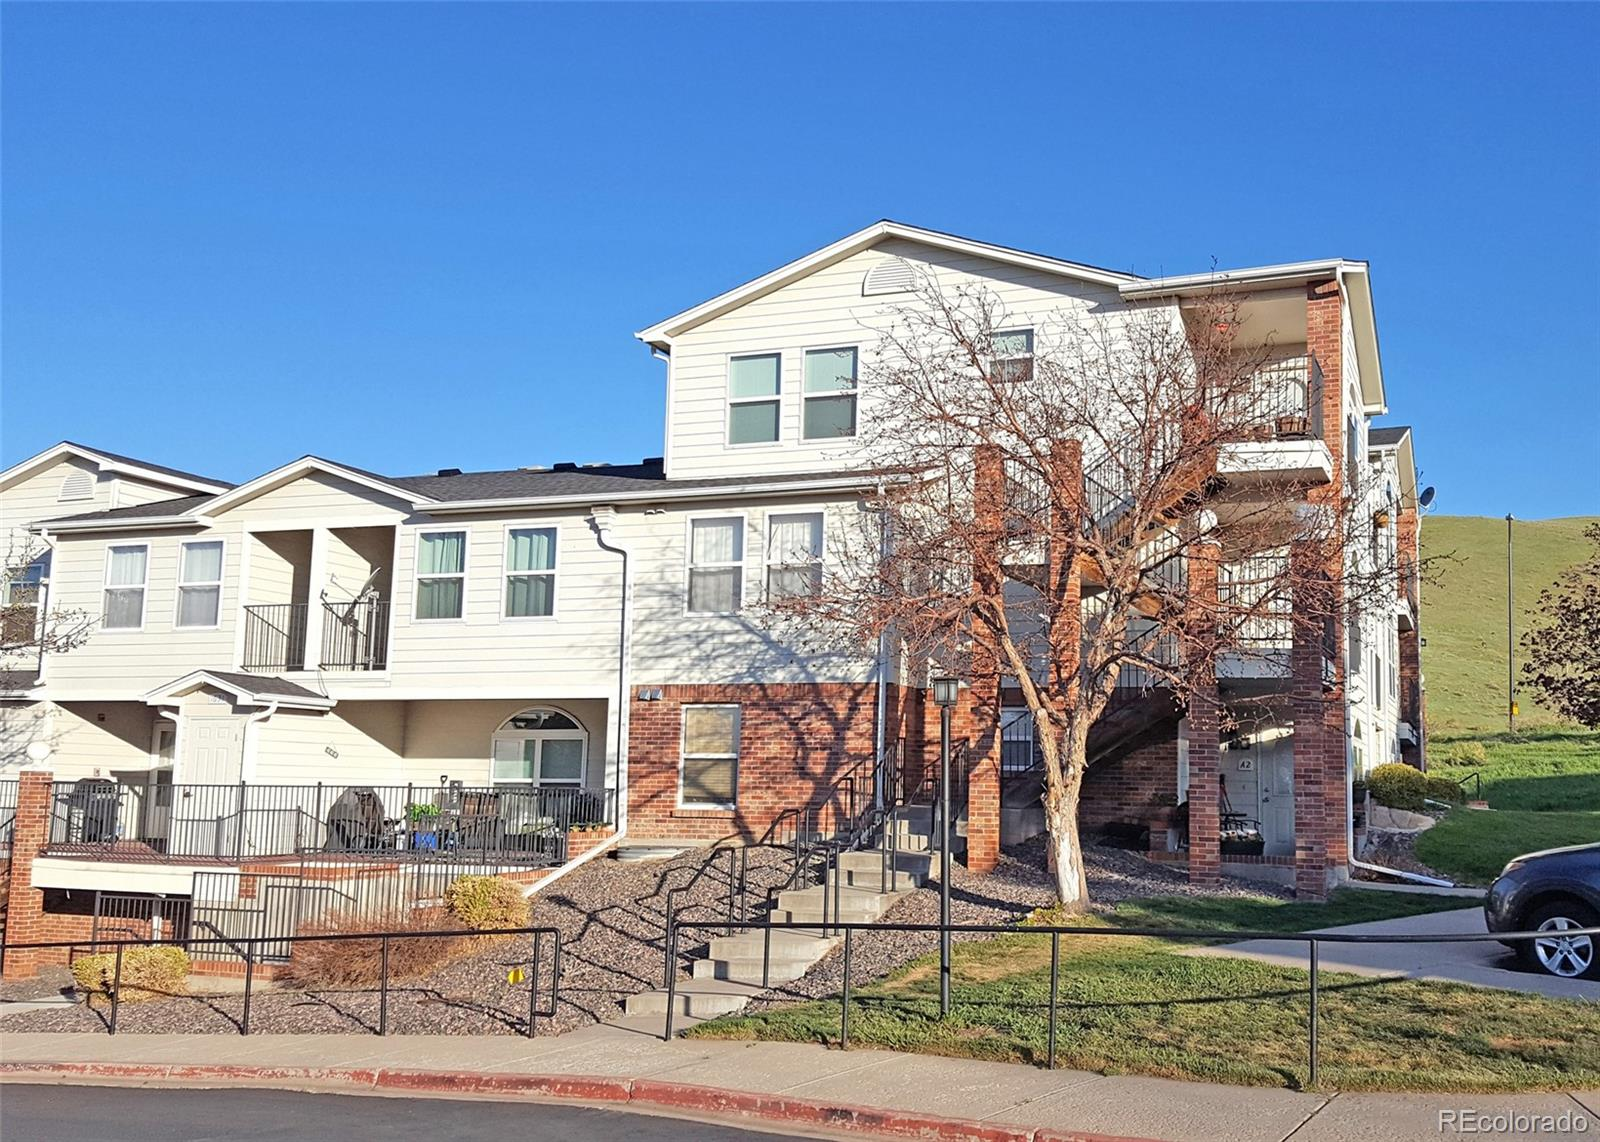 1631 S Deframe Street #B4, Lakewood, CO 80228 - Lakewood, CO real estate listing